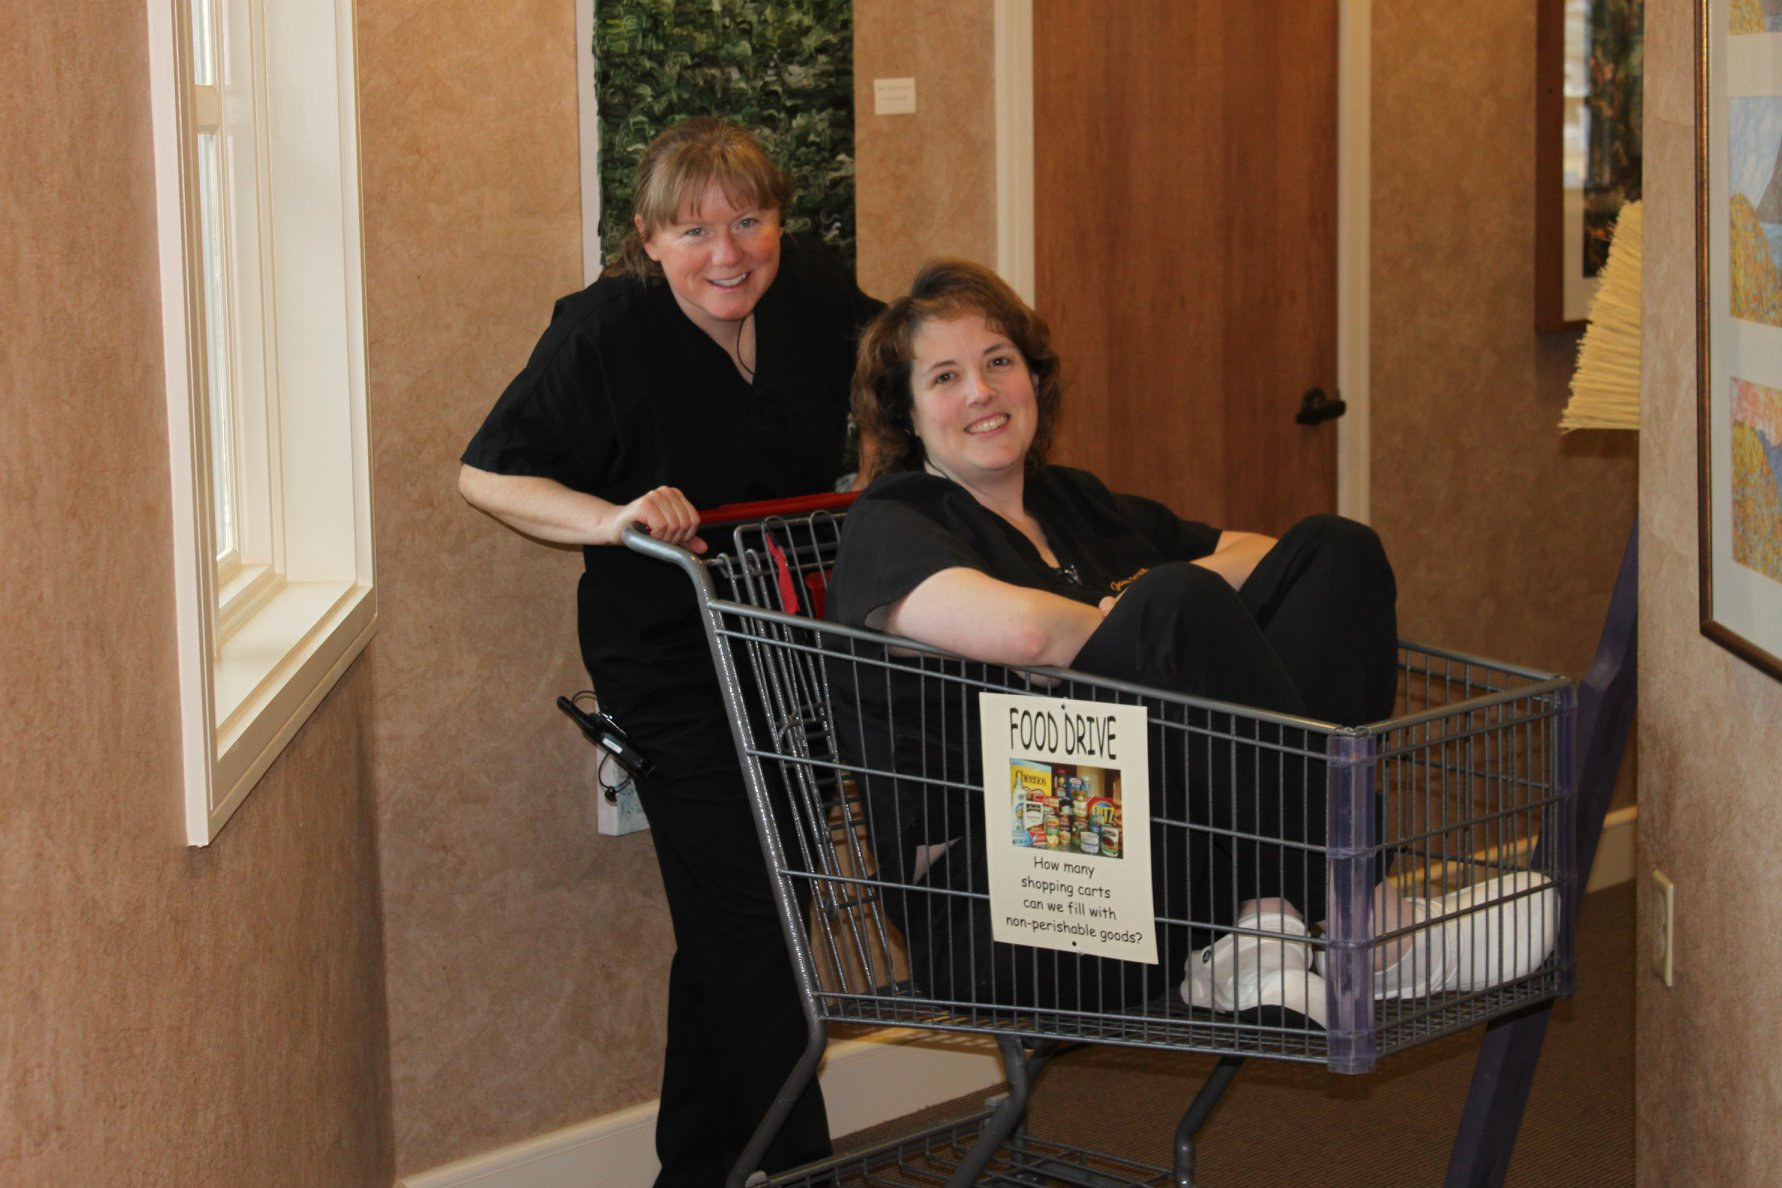 Kathryn pushing Janet in a shopping cart for a food drive for the local Food Pantry